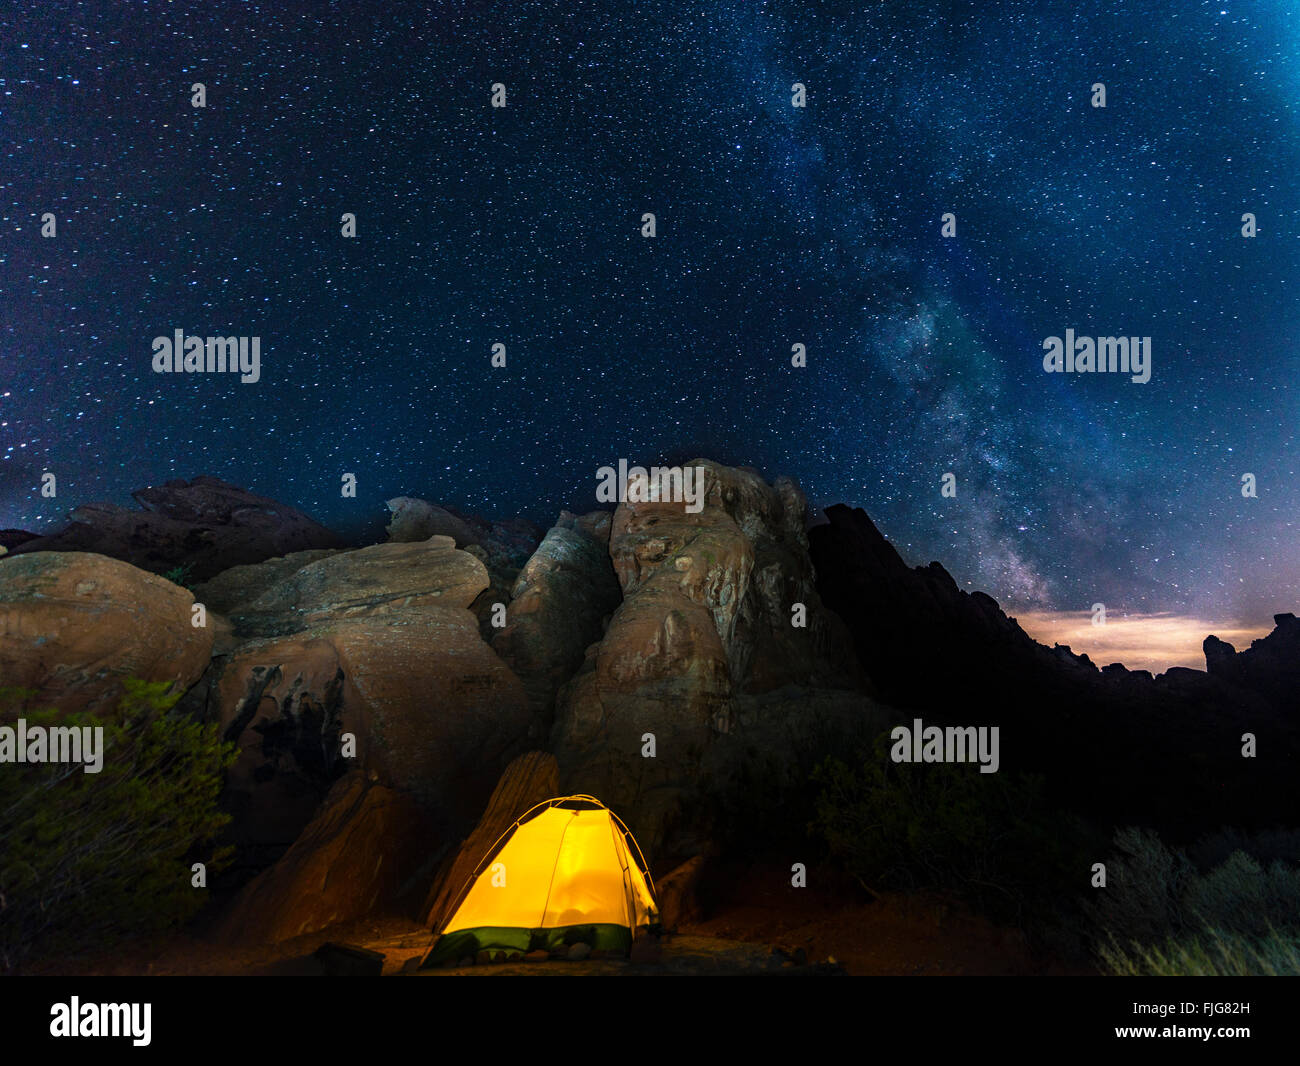 Tent on a campsite with starry sky above and Milky Way, night scene, Wildrose Campground, Death Valley National - Stock Image